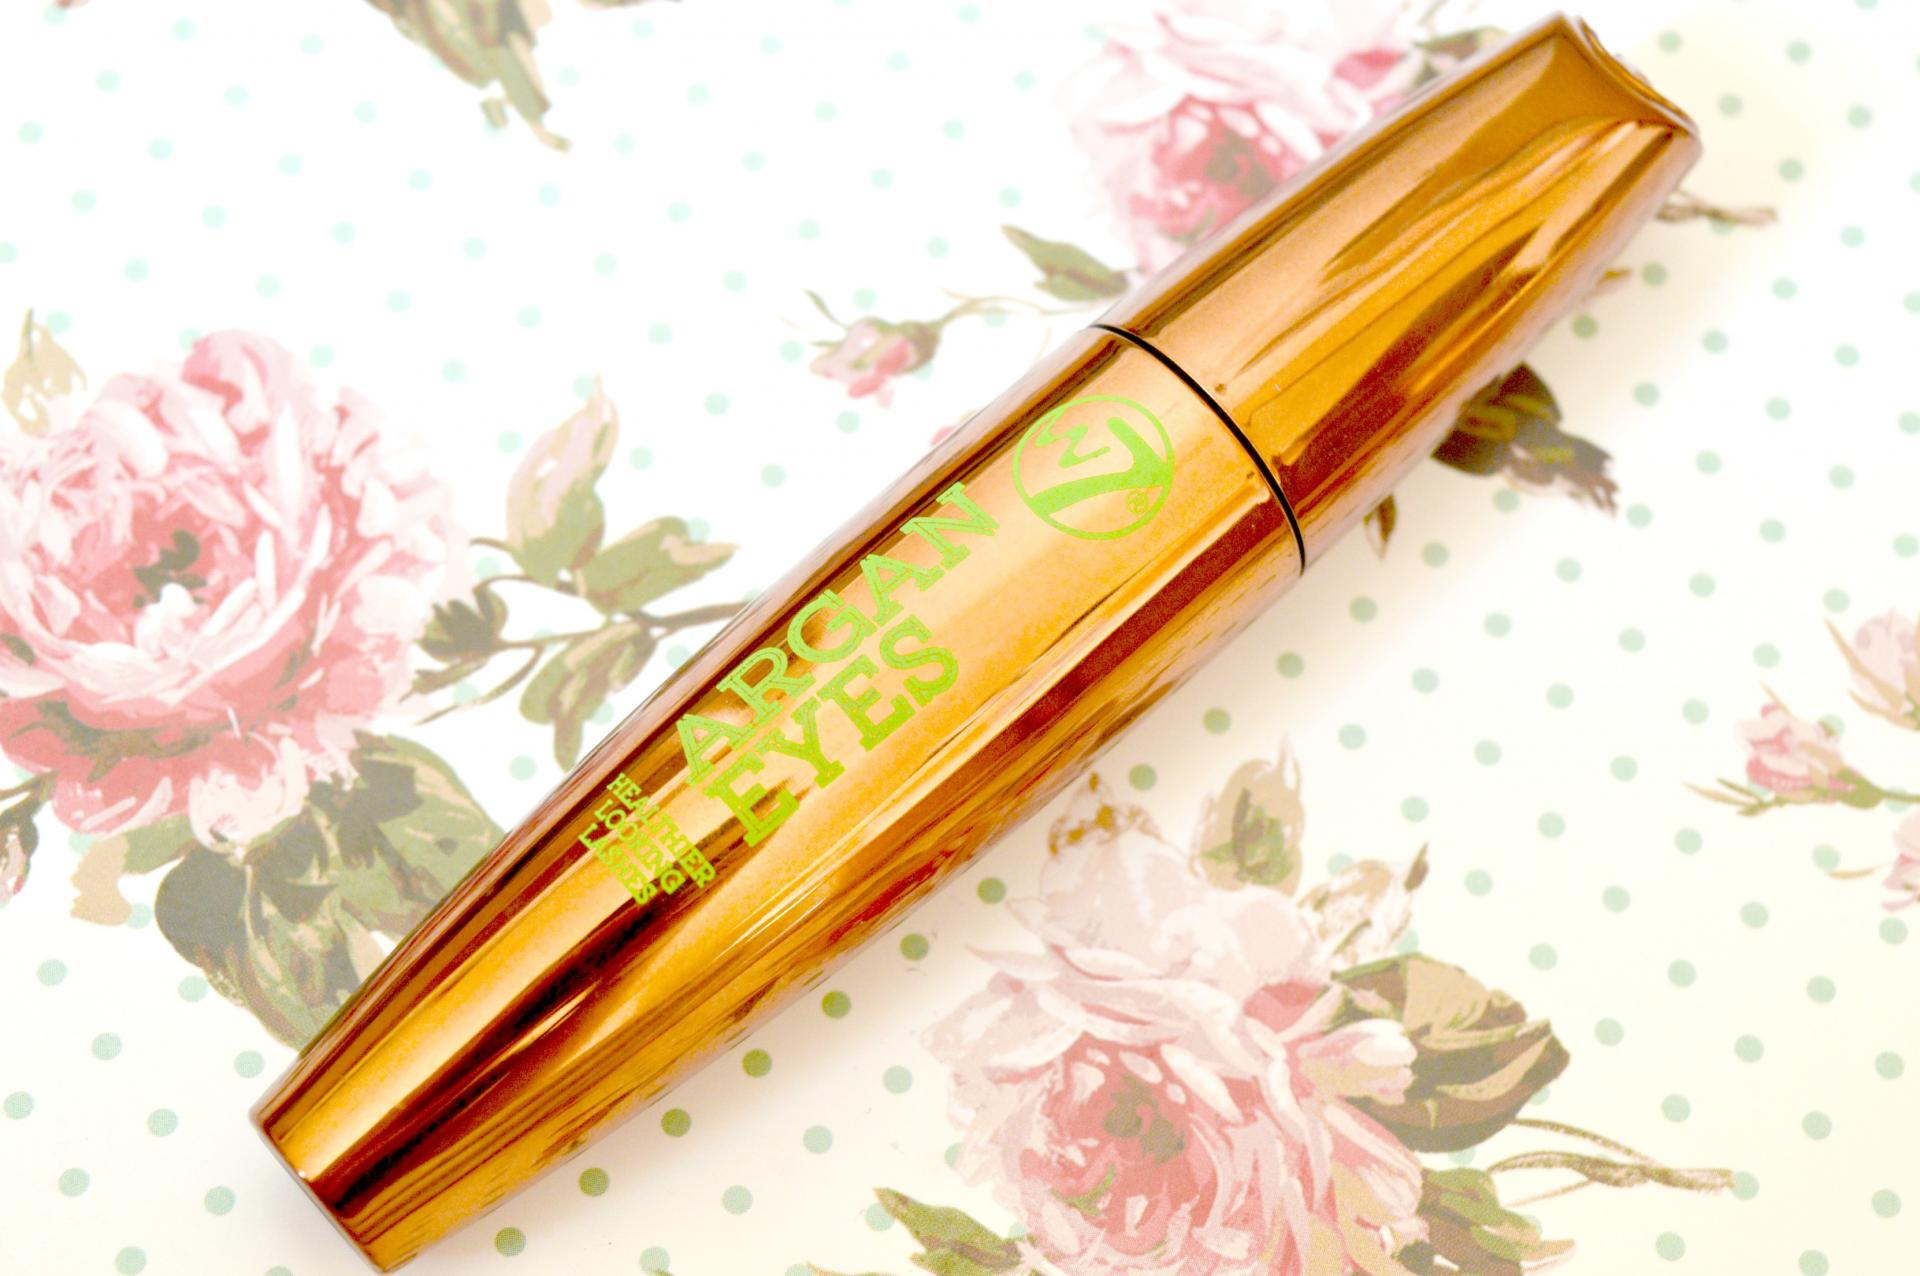 W7 Argan Eyes Mascara Review